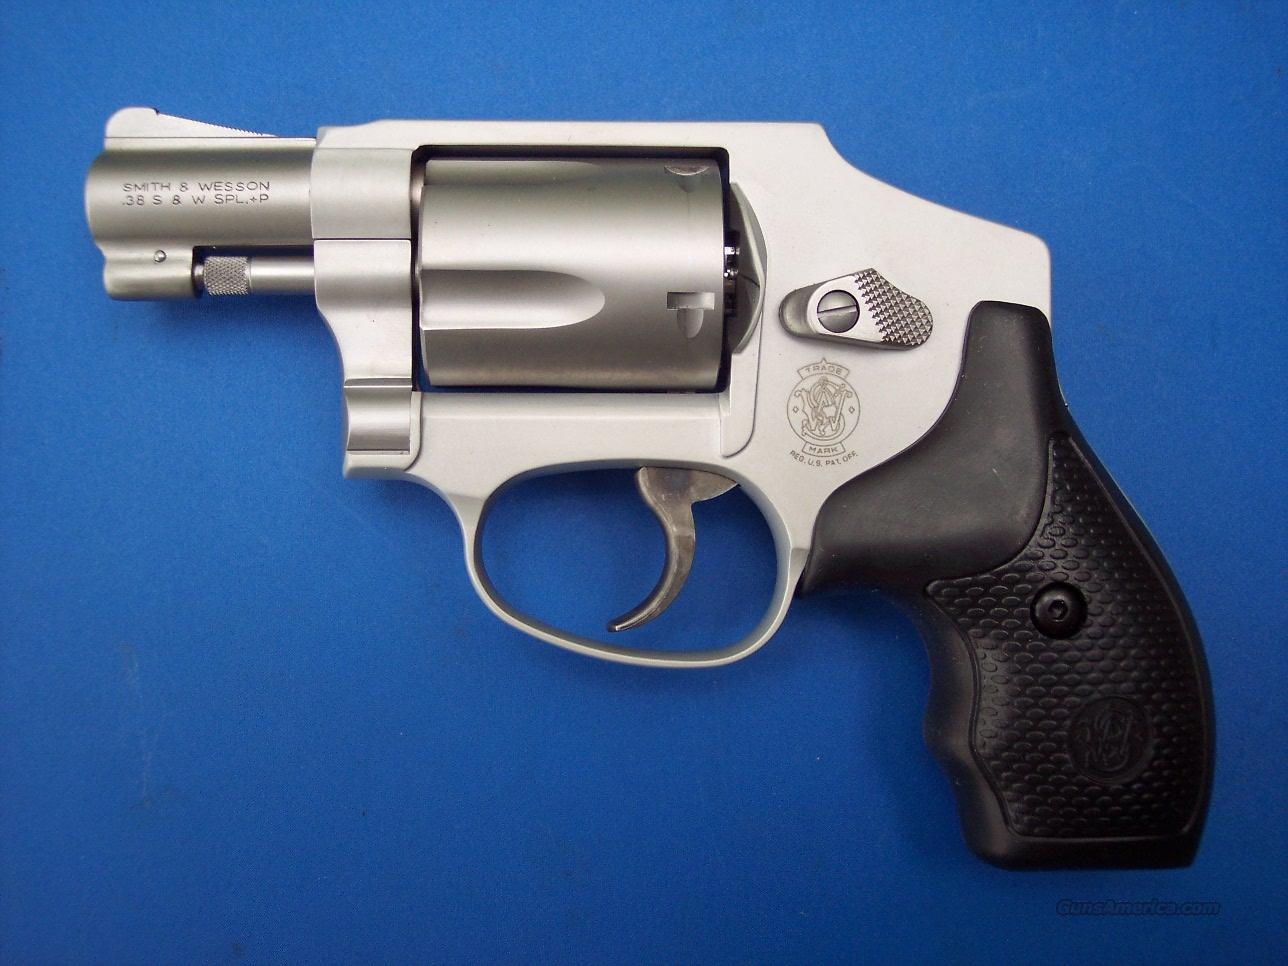 Smith & Wesson 642 NO LOCK Airweight Centennial J Frame 38 +P NEW  Guns > Pistols > Smith & Wesson Revolvers > Pocket Pistols